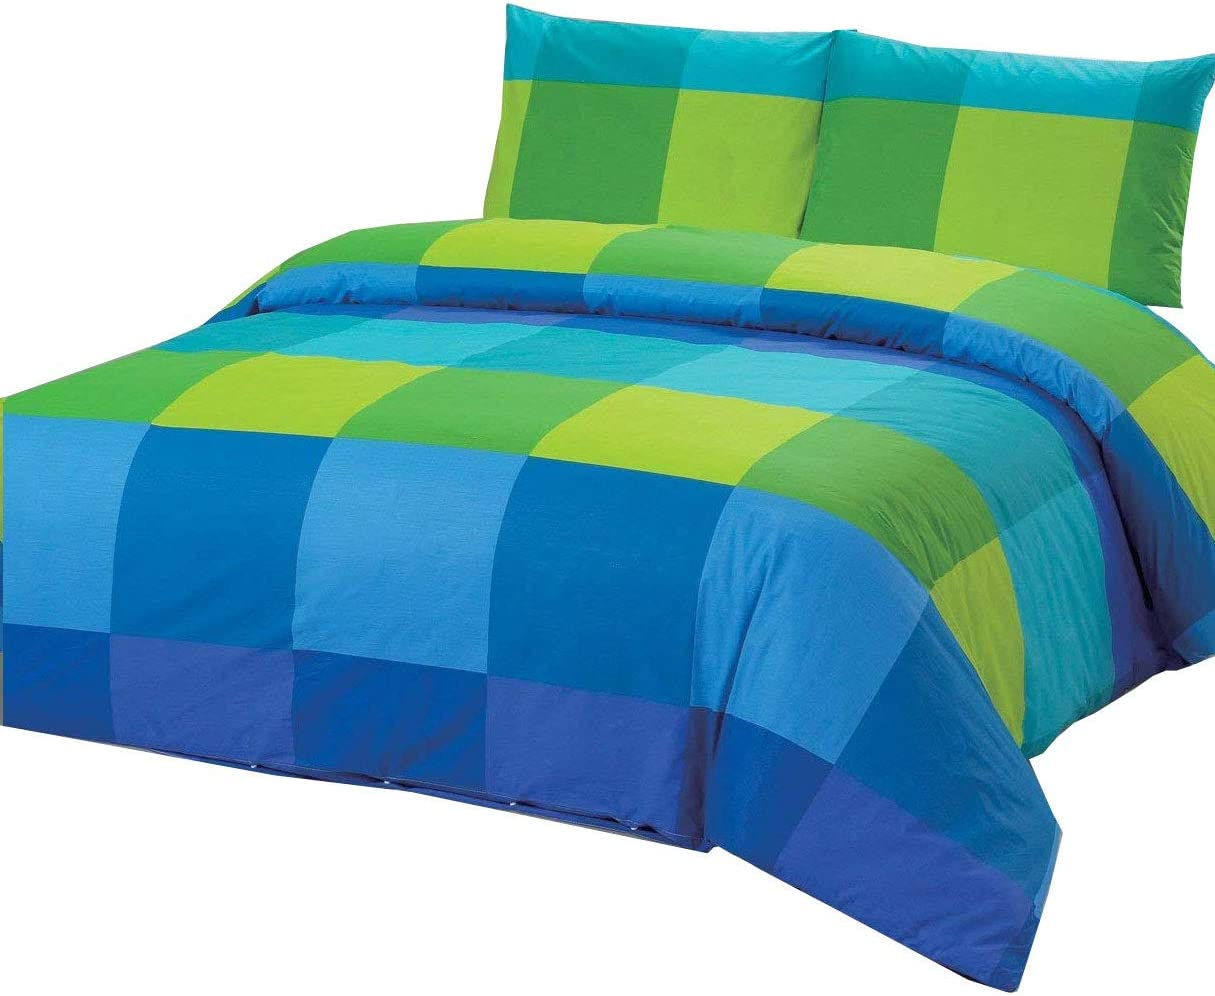 100 Percent Cotton Full/Queen Duvet Cover Set with 2 Pillow Cases, Blue Green Large Checkered Pattern, 200 Threat Count